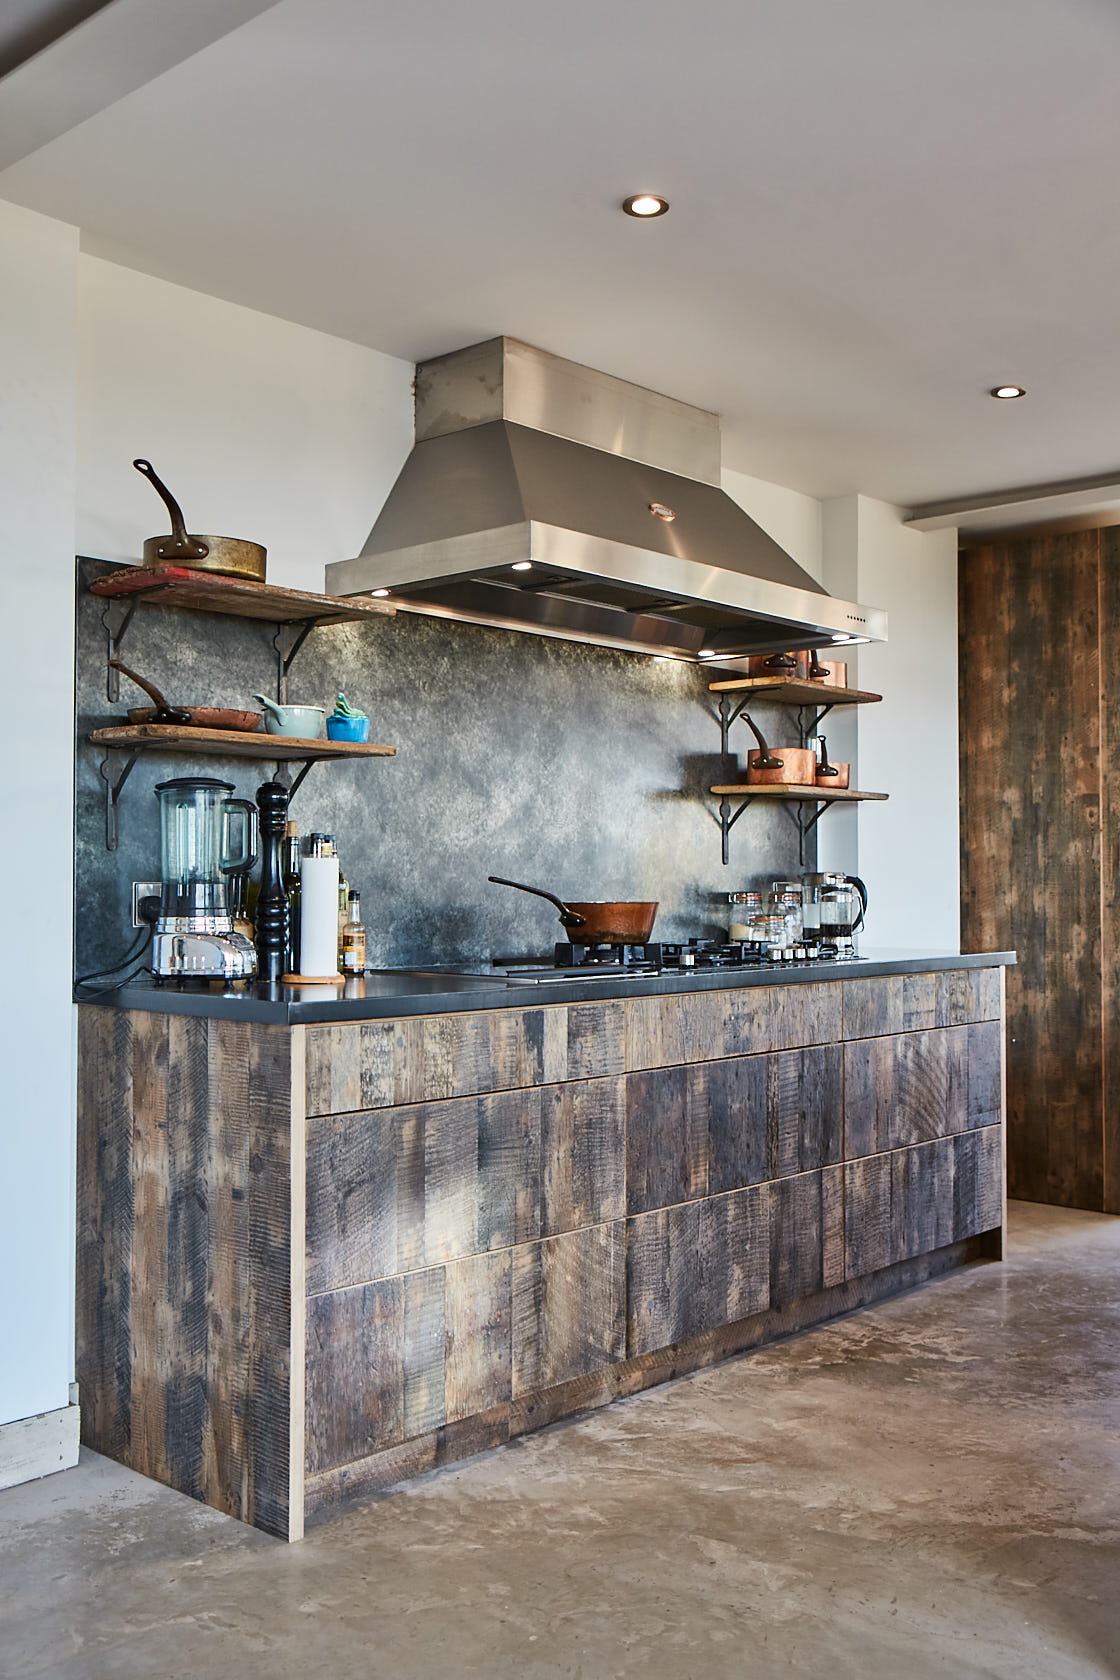 natural textures - If colour isn't really your thing, think about introducing natural materials into your kitchen. This kitchen by The Main Company features a reclaimed engineered pine wood finish of Oldham Mill Board, solid oak drawer boxes and lacquered birch plywood carcasses. Much in the same way that Diane Keaton designed her home, this kitchen contrasts industrial greys and urban fittings with the natural texture of reclaimed wood breakfast bar to create a rustic, stylish space. This is a perfect example of how to create a unique space by using neutral tones. This simple twist on the traditional kitchen styles makes for a kitchen that will only improve with age.